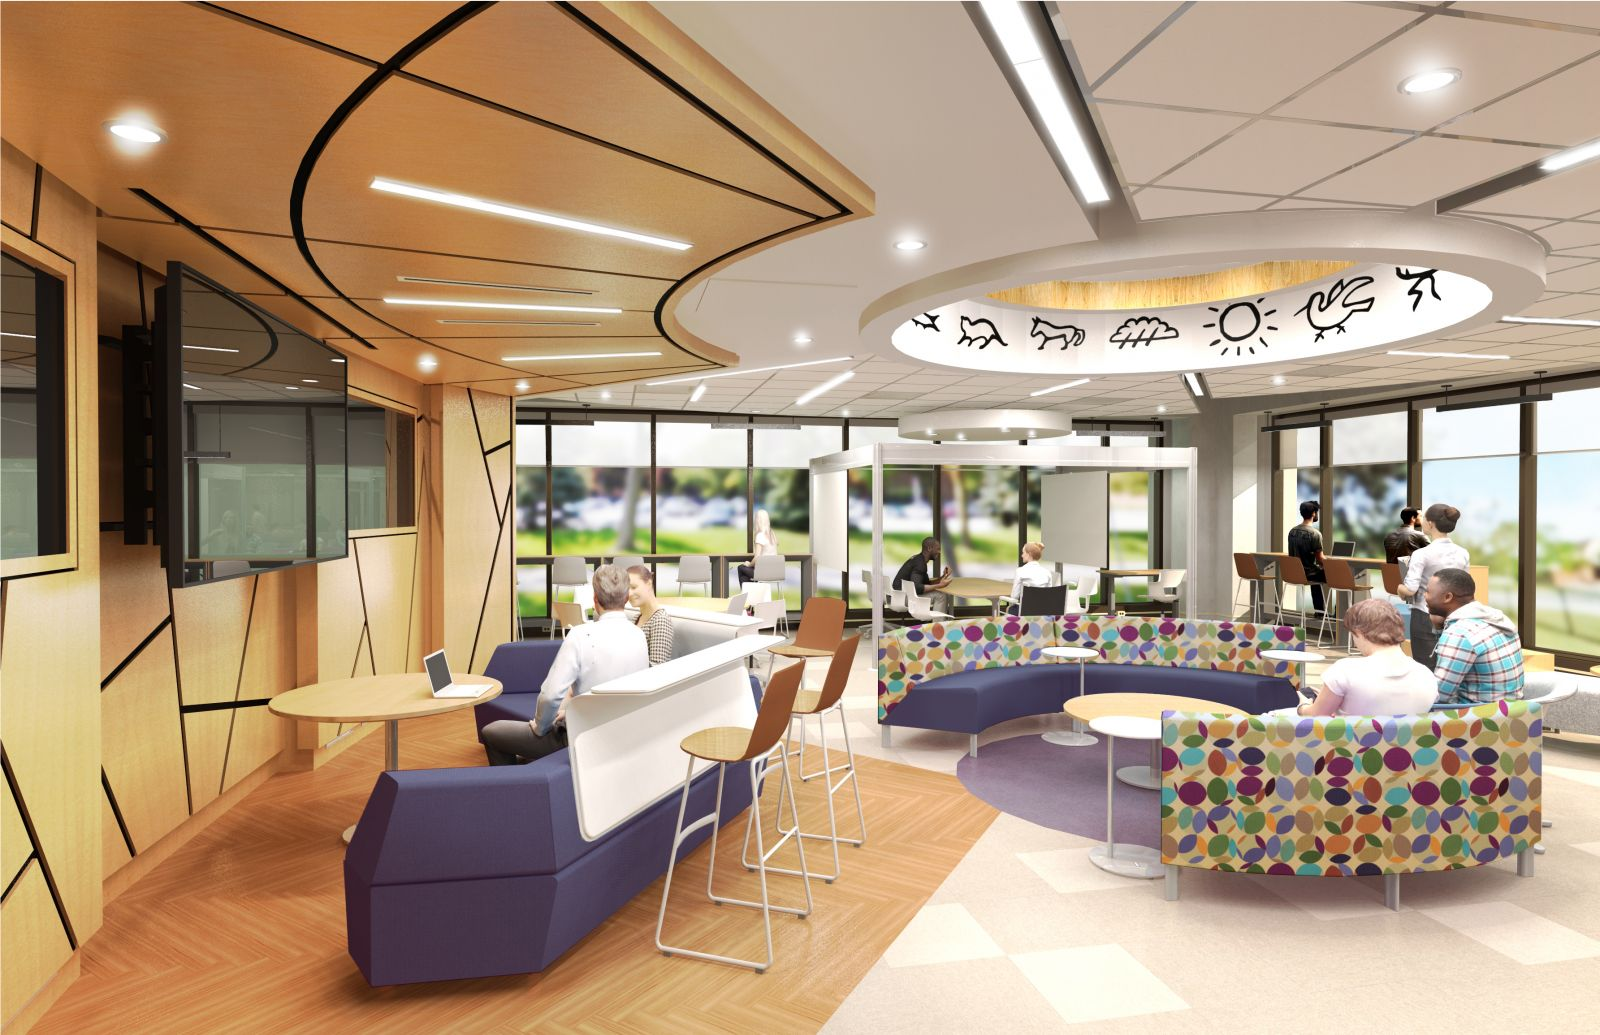 Design Rendering of Student Research Collaboratory